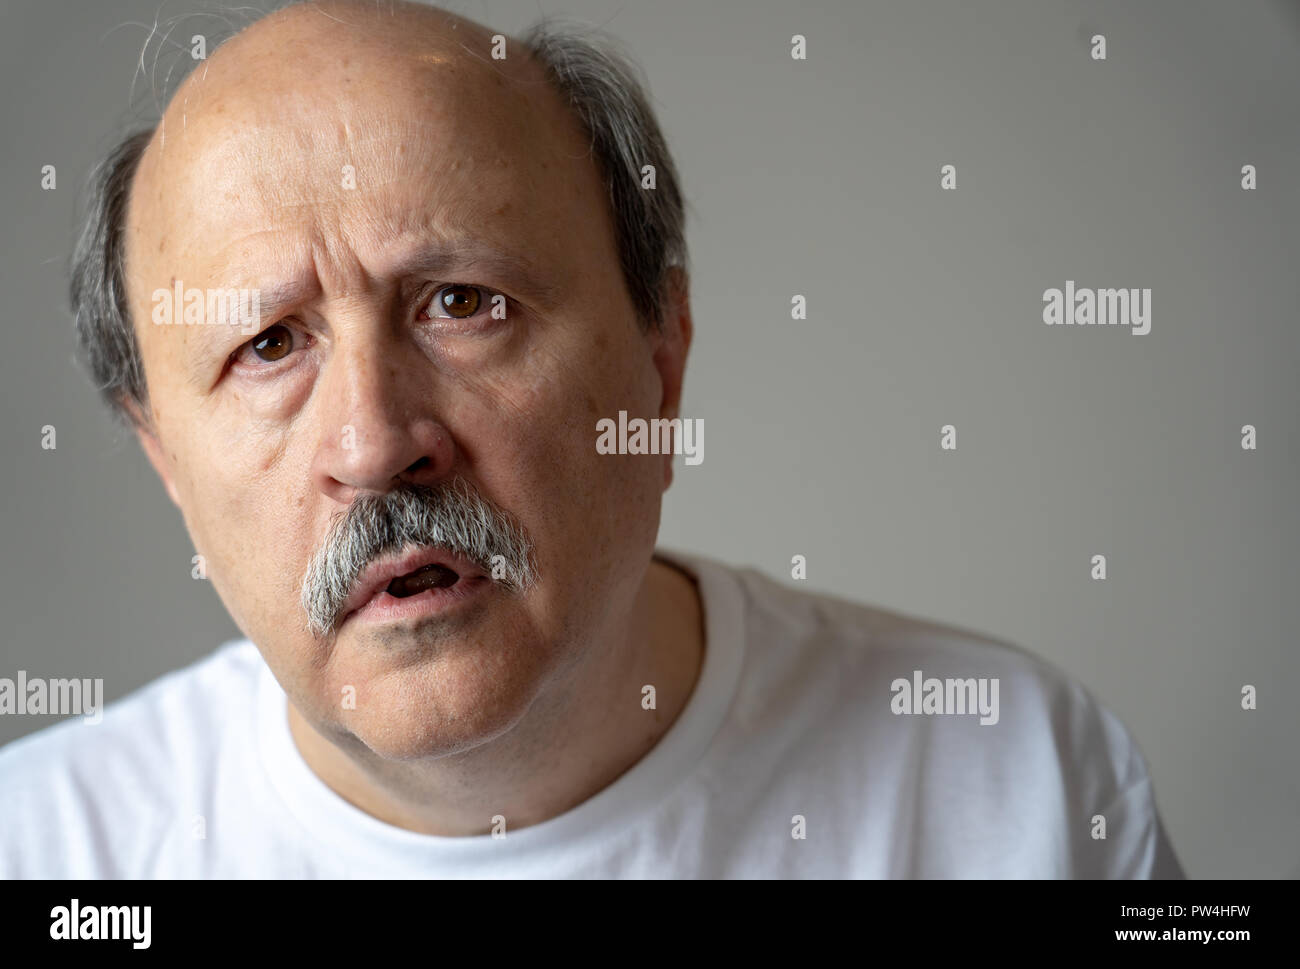 Close up portrait of senior man looking confused and lost suffering from dementia, memory loss or Alzheimer in Mental health in Older Adults and later - Stock Image